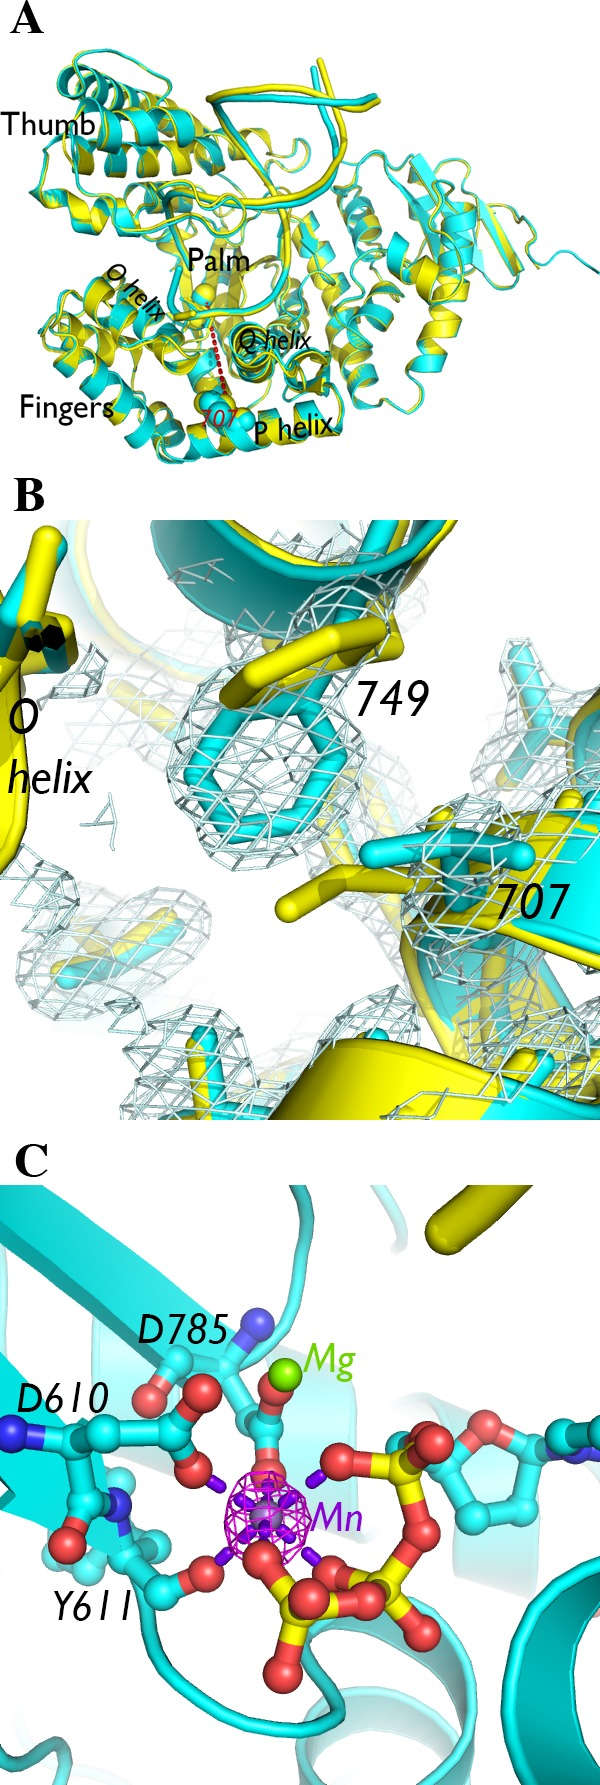 Crystal structure of I707L KlenTaq1–DNA–dNTP ternary complex. (A) The crystal structure of the I707L mutant ternary complex (cyan) superimposed on the wild-type KlenTaq1 ternary complex (3KTQ; yellow). Residue 707 is connected to an active site divalent cation with a red dashed line corresponding to ∼24 Å long. (B) The 2 F o – F c map of the mutant ternary complex near the residue 707 mutation is shown at 1.0σ. (C) The active site, consisting of conserved aspartic acids and a ddCTP, contains two metal ions, one of which is associated with strong anomalous difference density (displayed at 4.0σ in magenta) around a divalent cation site. The manganese(II) atom is connected to nearby oxygen atoms with purple dashed lines corresponding to ∼2.1 Å long. The interatomic distances between the magnesium(II) atom and surrounding oxygen atoms are also ∼2.1 Å.